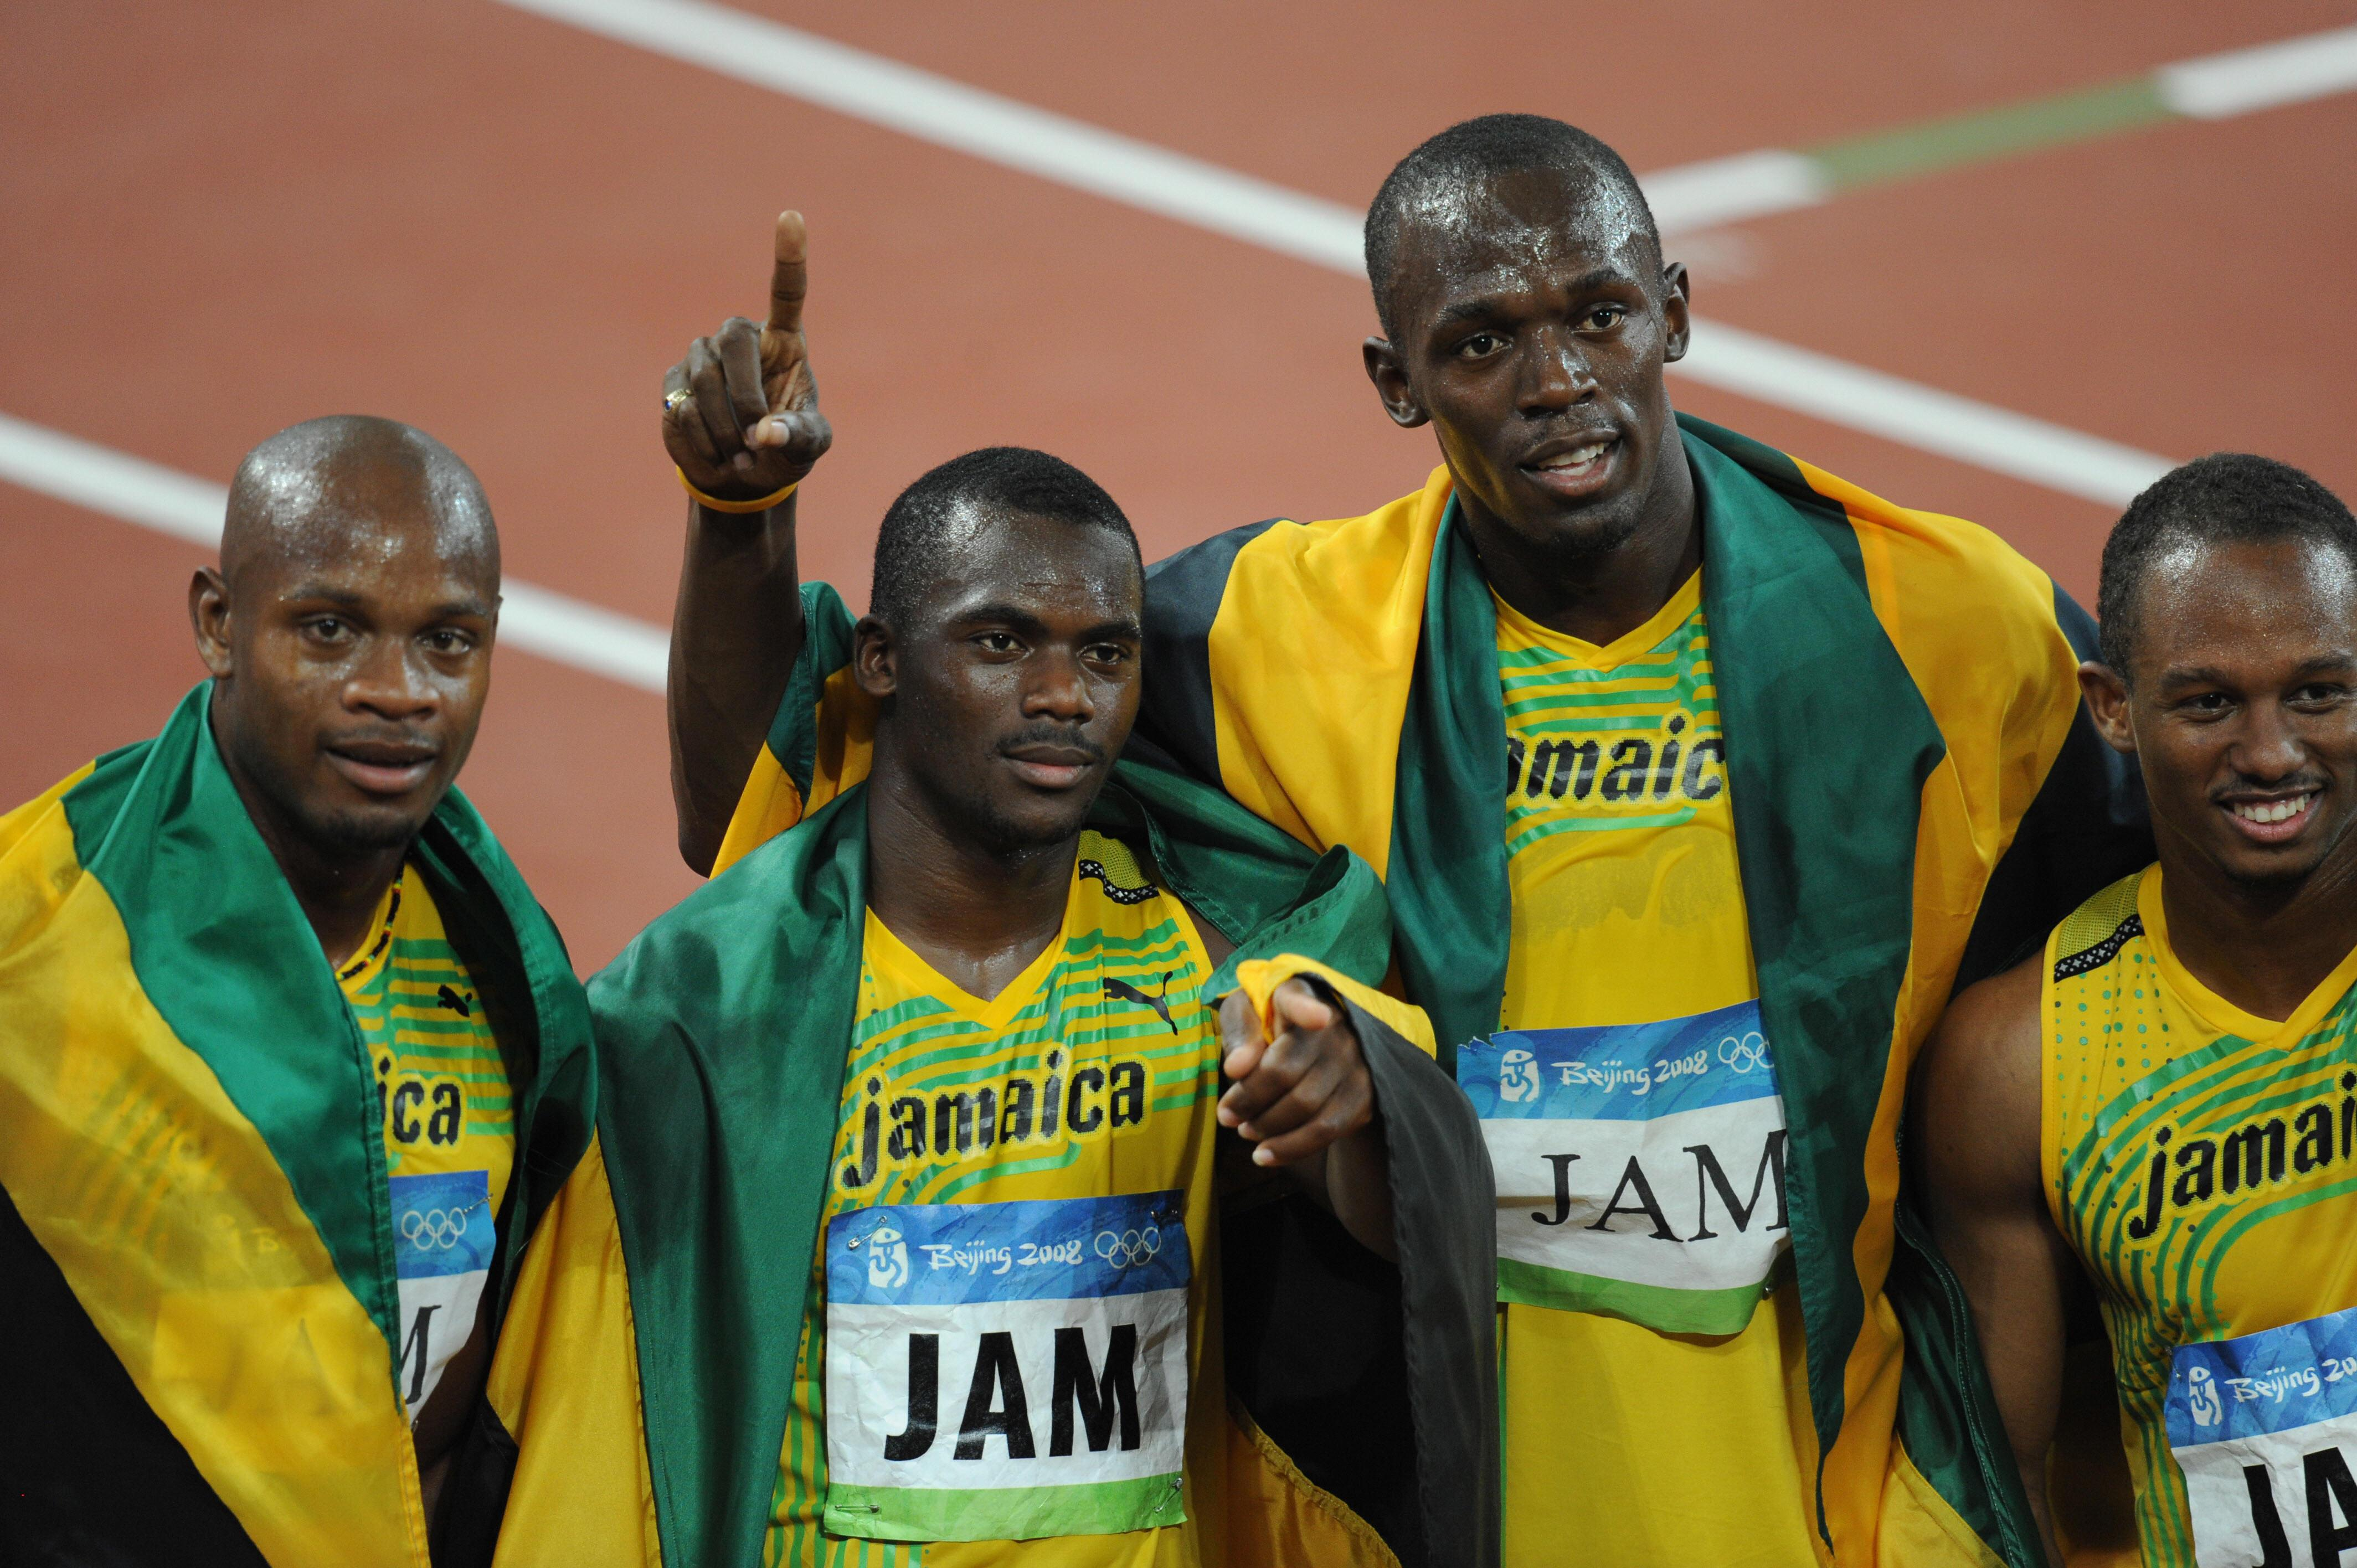 Four Jamaican athletes celebrate after winning the Gold medal in Beijing